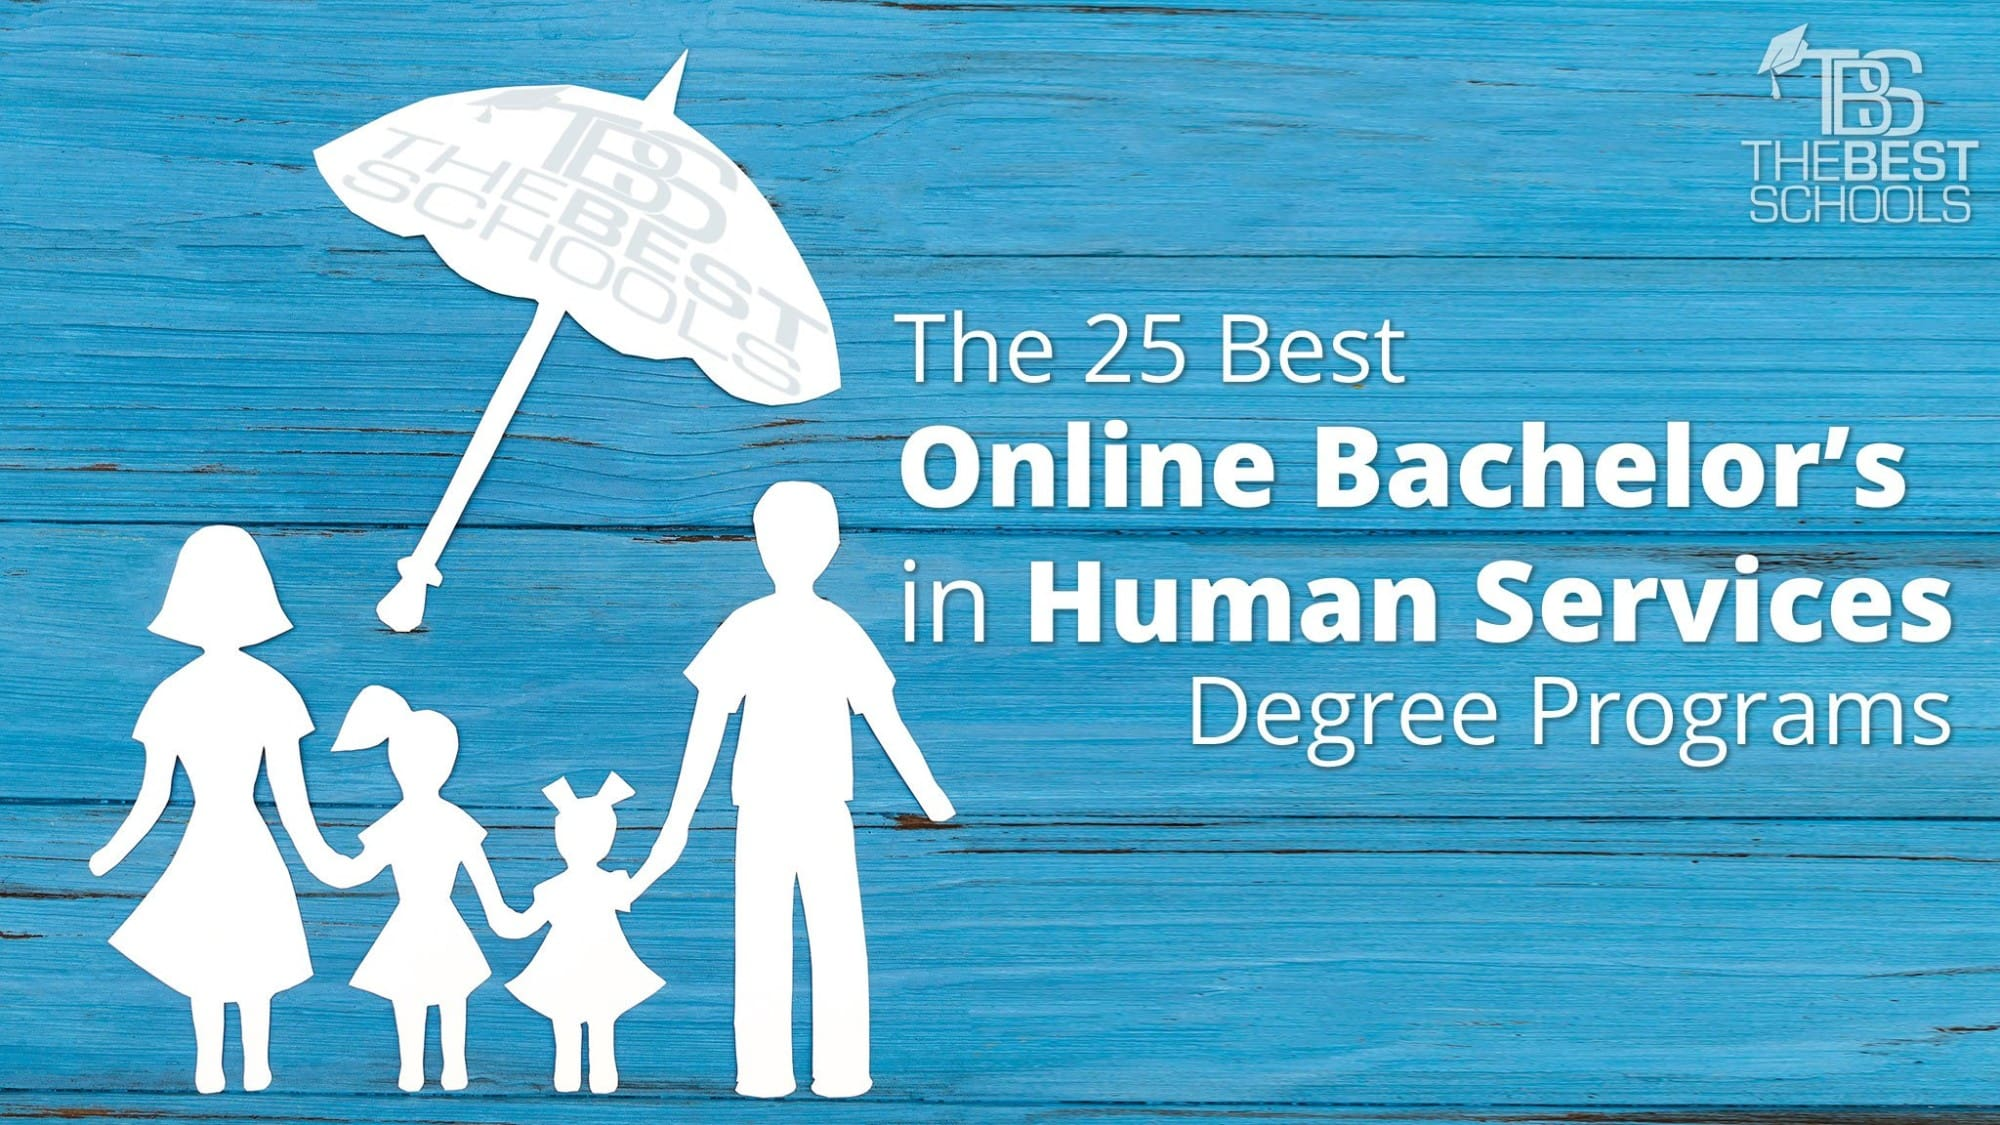 The 25 Best Online Bachelors In Human Services Degree Programs